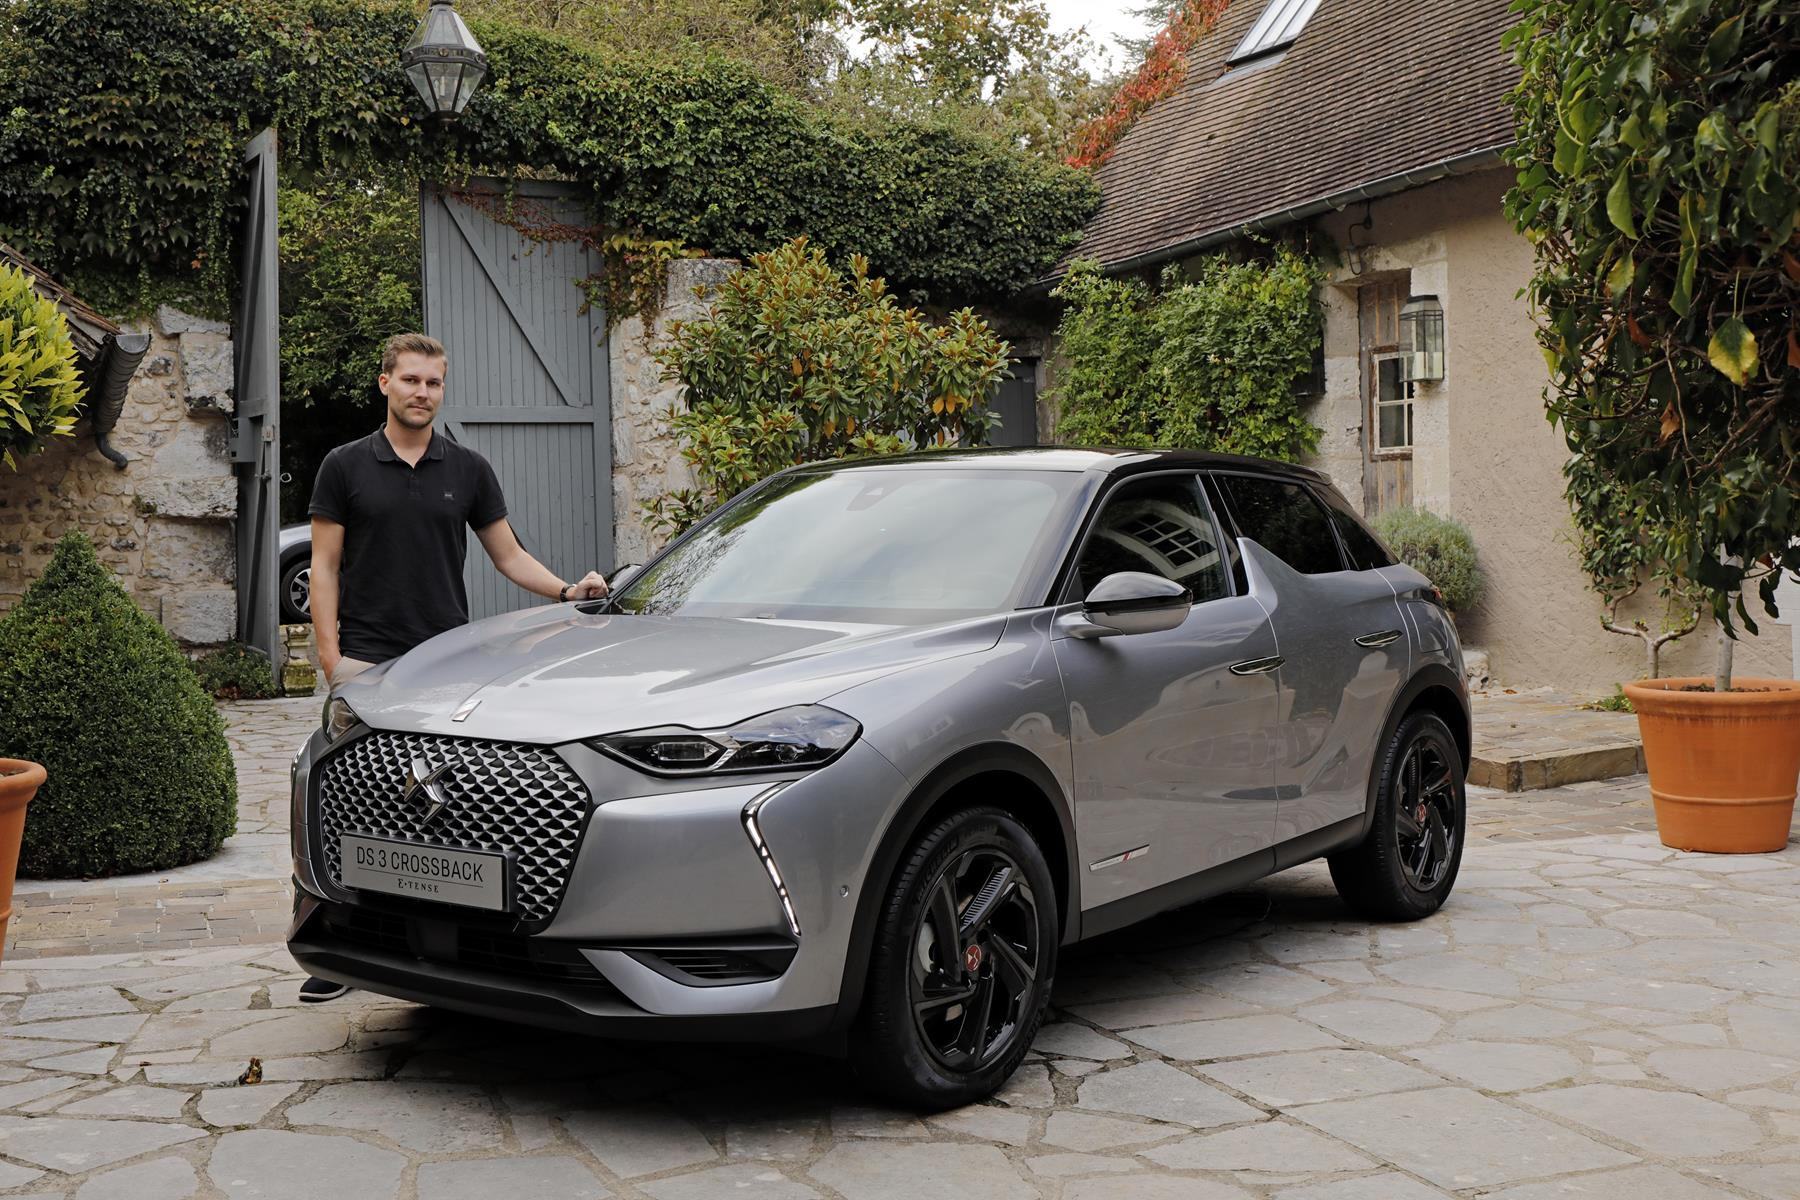 Timo-Pape-DS-3-Crossback-E-Tense-Test-Drive-France-2019